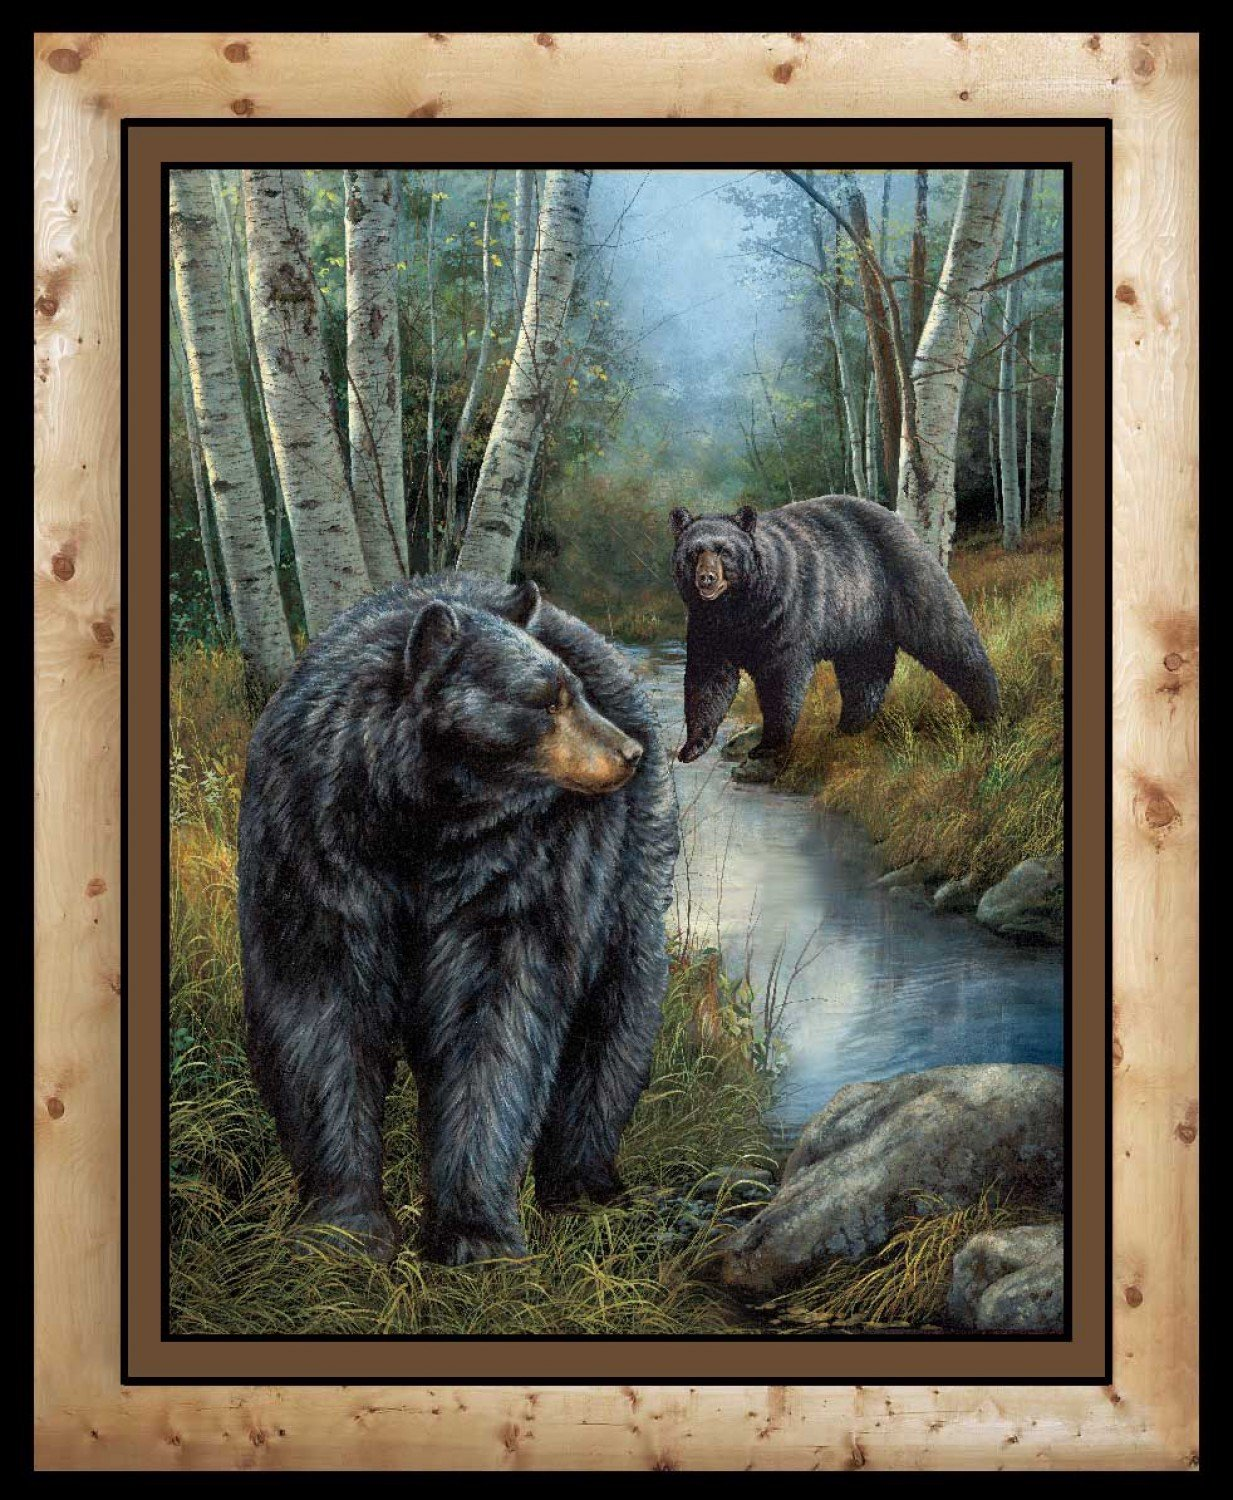 SC-Wild Wings Reluctant Companion 49469 Wall Panel